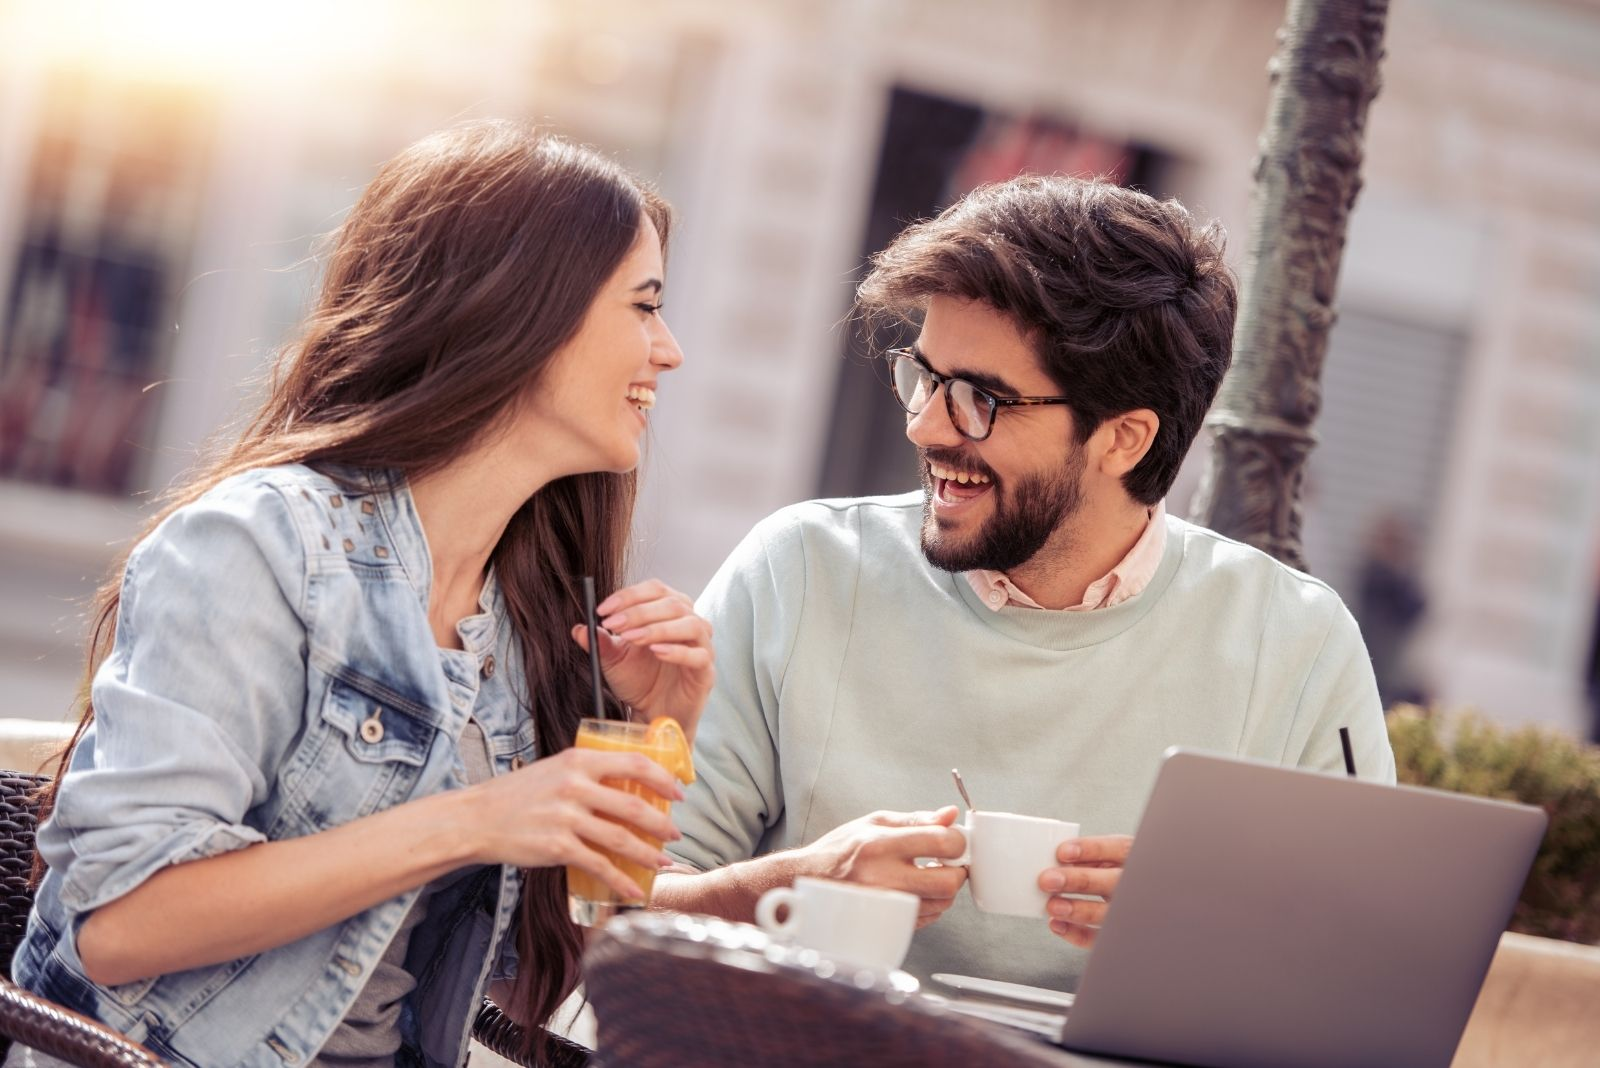 beautiful couple dating laughing and working at the same time in an outdoor cafe